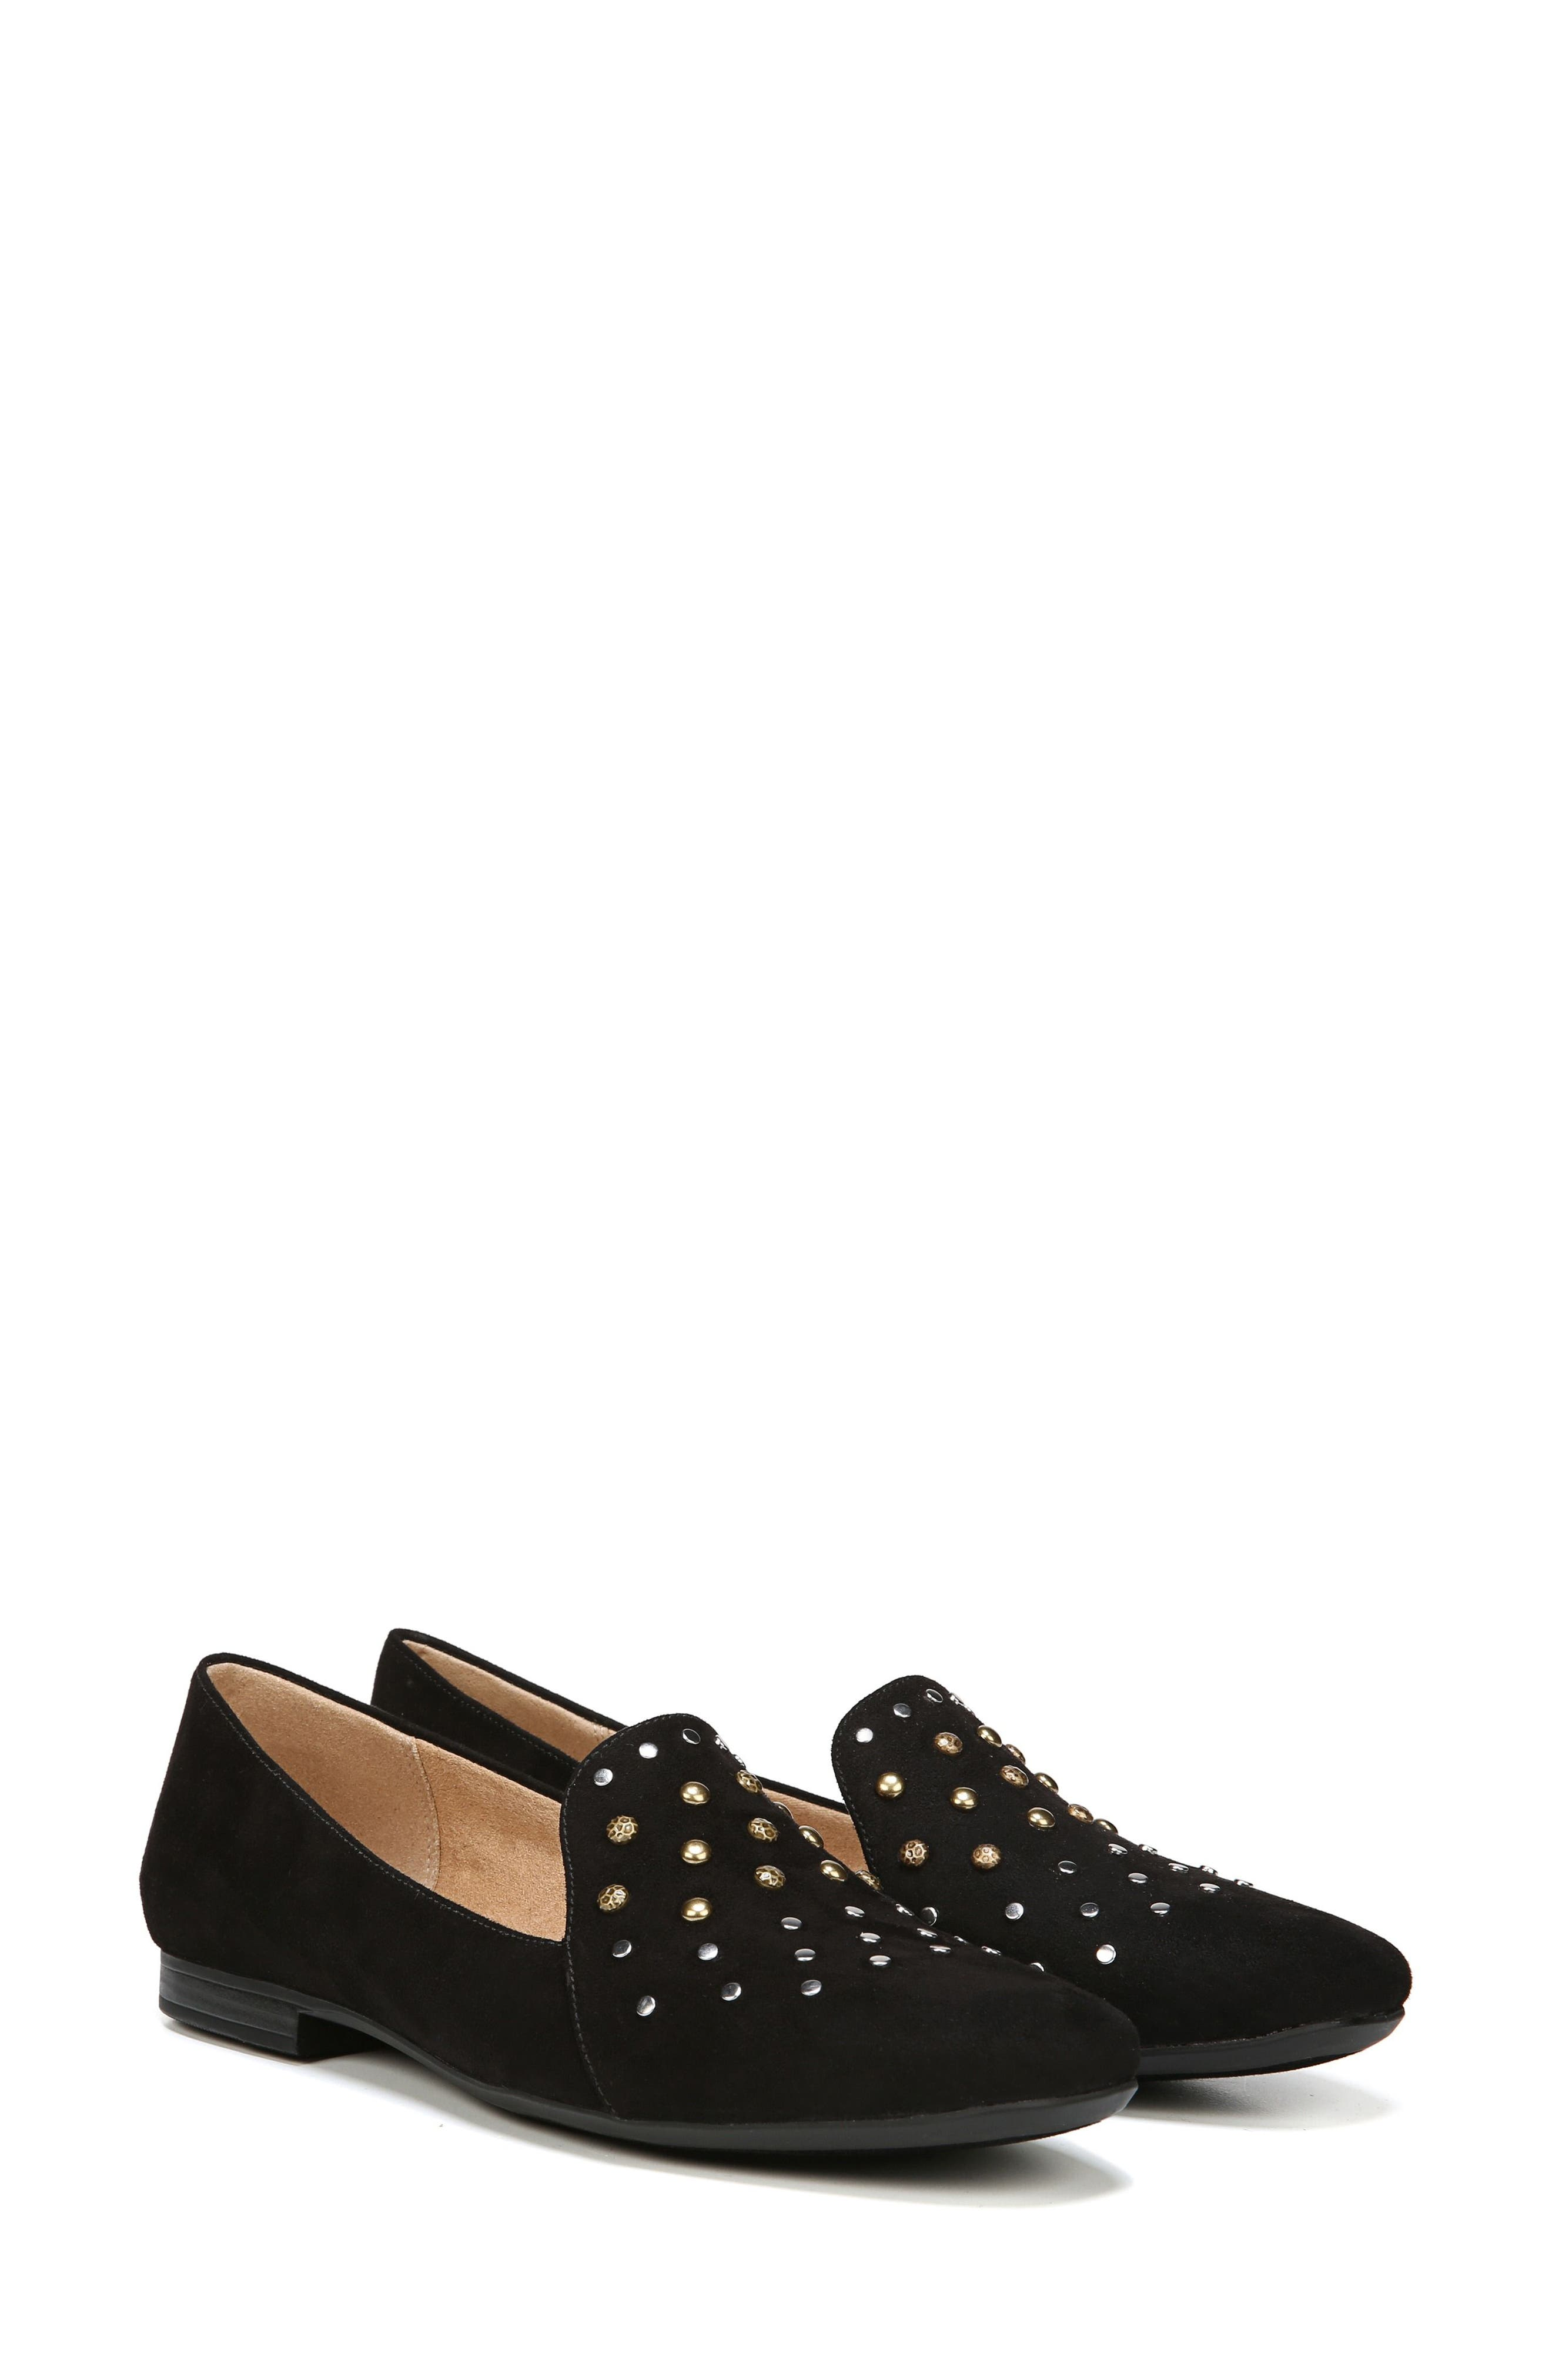 NATURALIZER, Emiline 4 Loafer, Alternate thumbnail 6, color, BLACK FABRIC